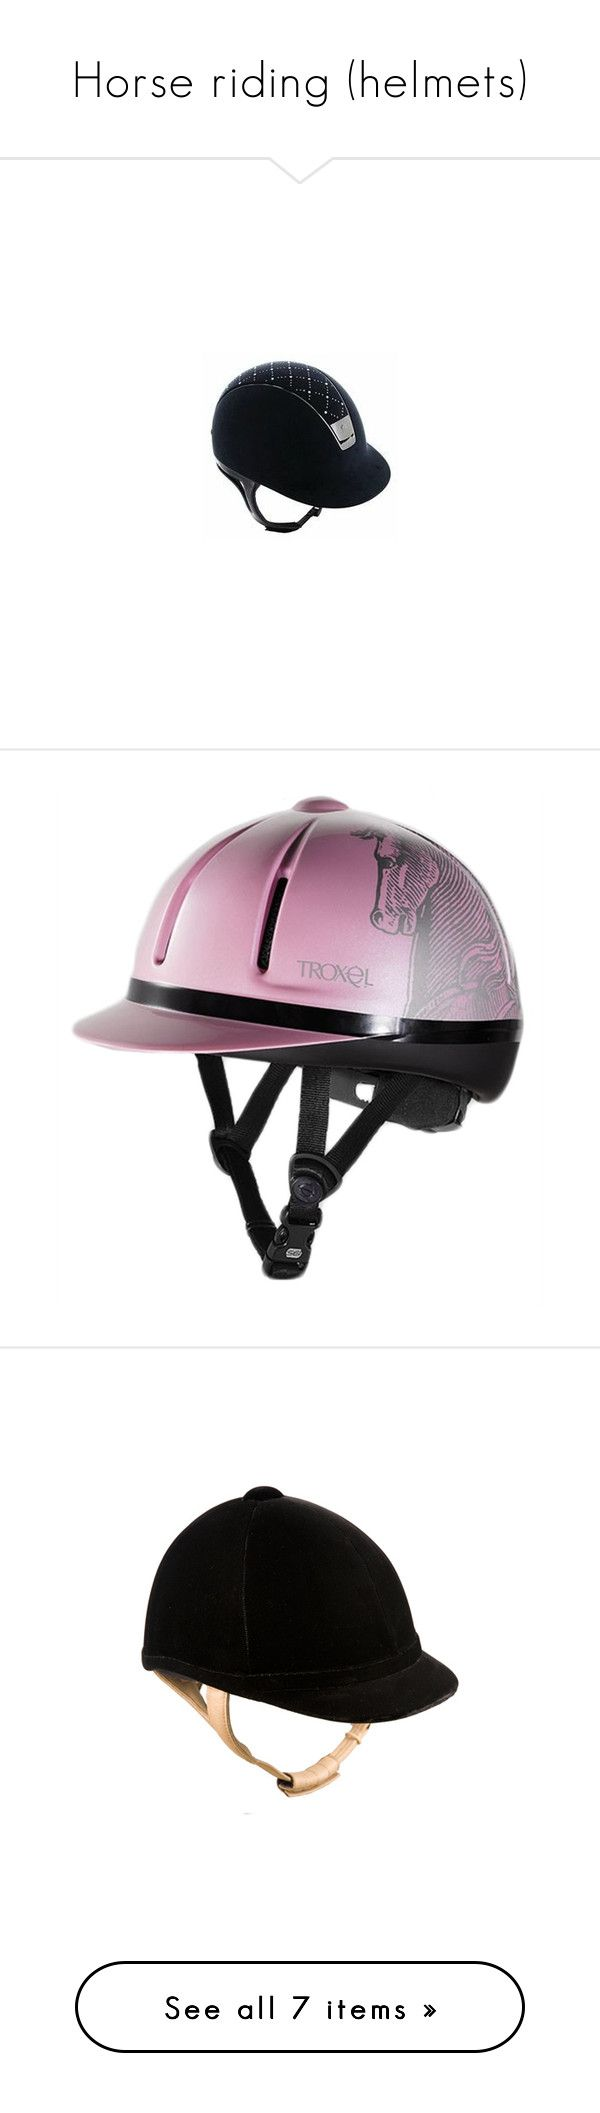 """""""Horse riding (helmets)"""" by the-true-me ❤ liked on Polyvore featuring hats, accessories, riding, helmets, charles owen, equestrian, horse and riding helmets"""